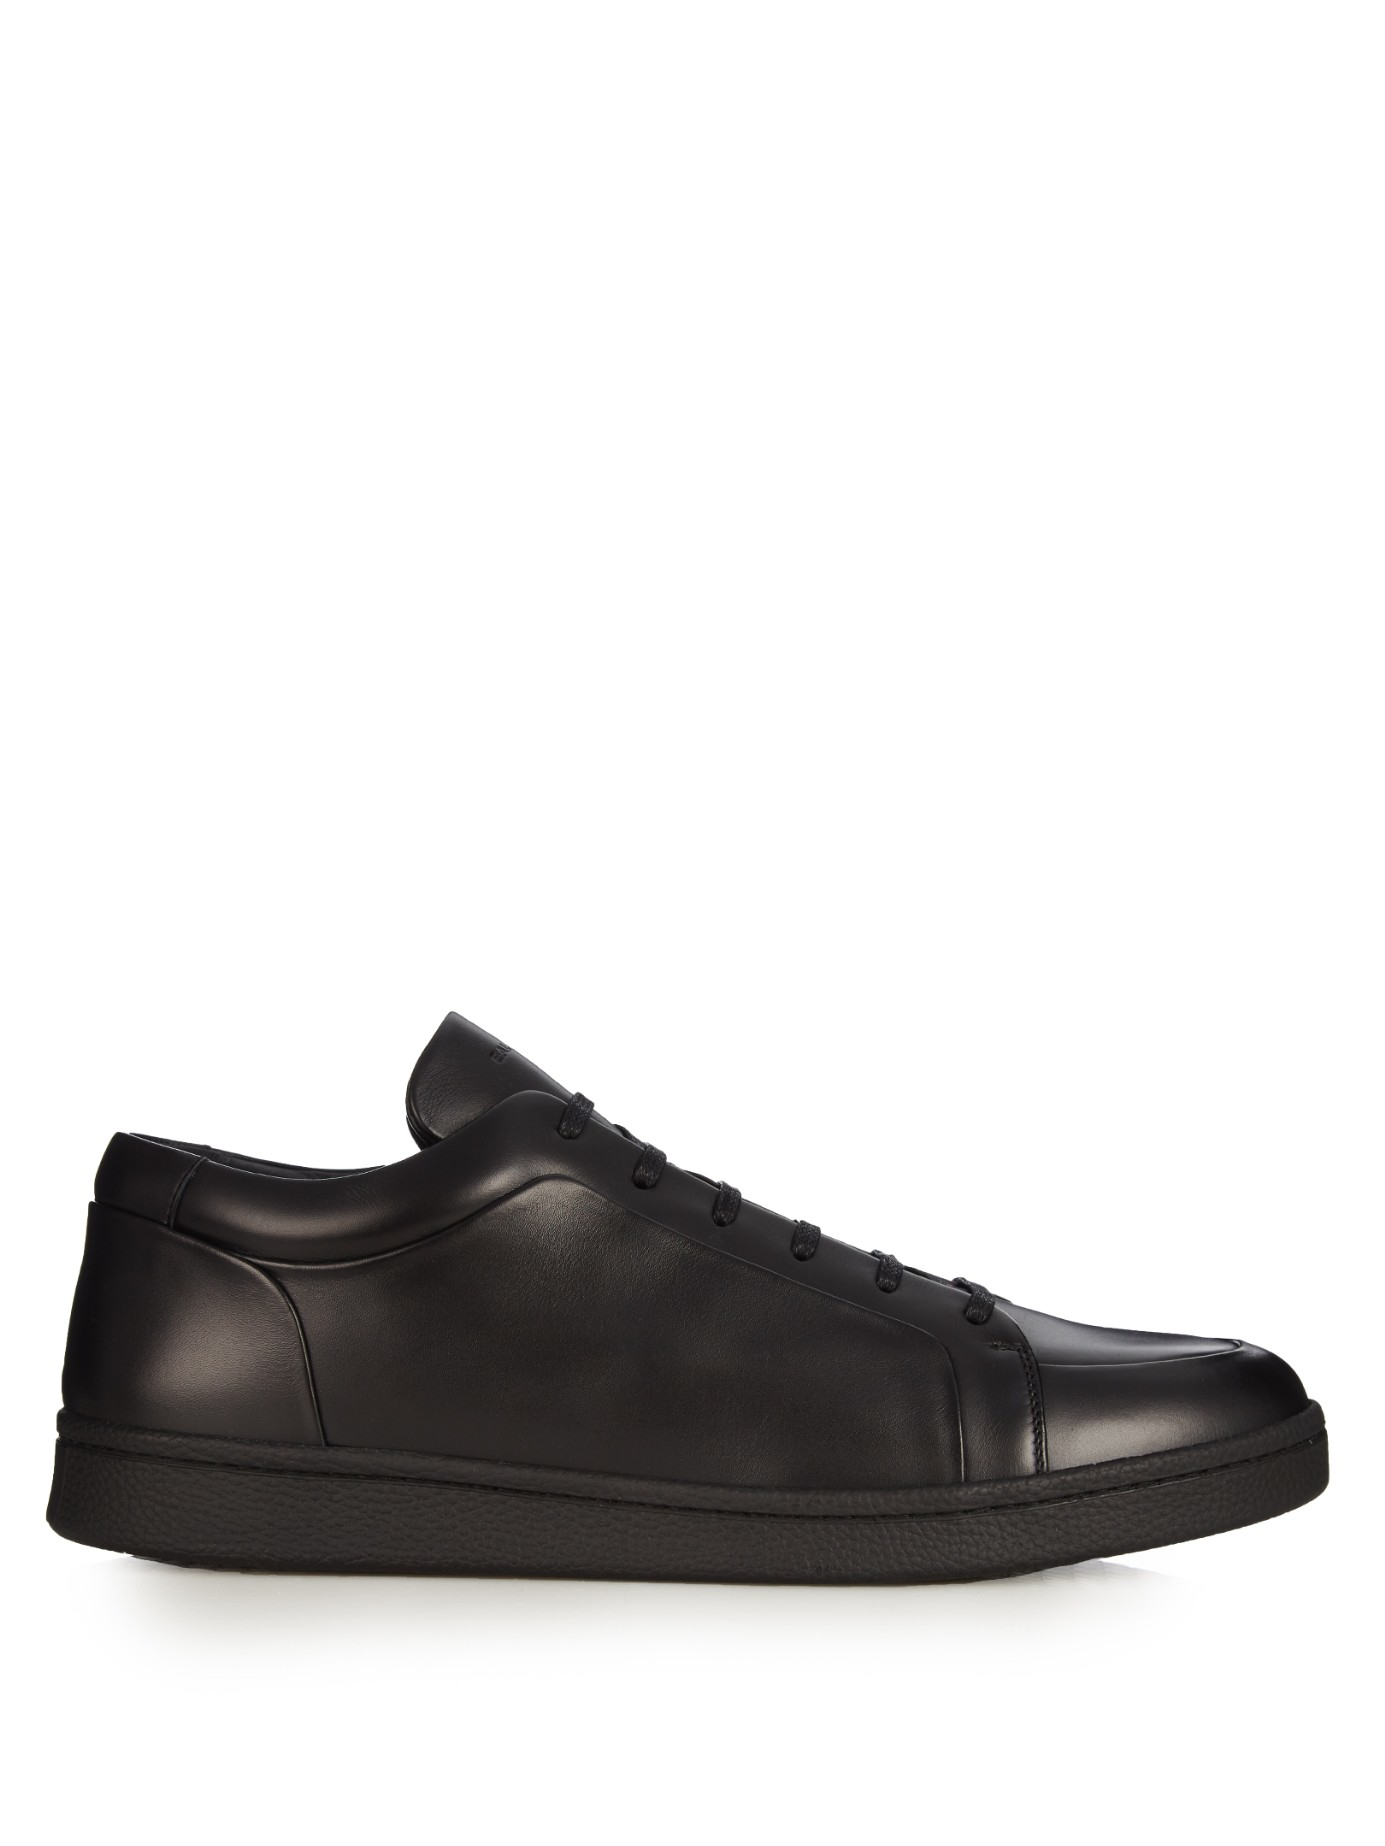 balenciaga urban low top leather trainers in black for men lyst. Black Bedroom Furniture Sets. Home Design Ideas